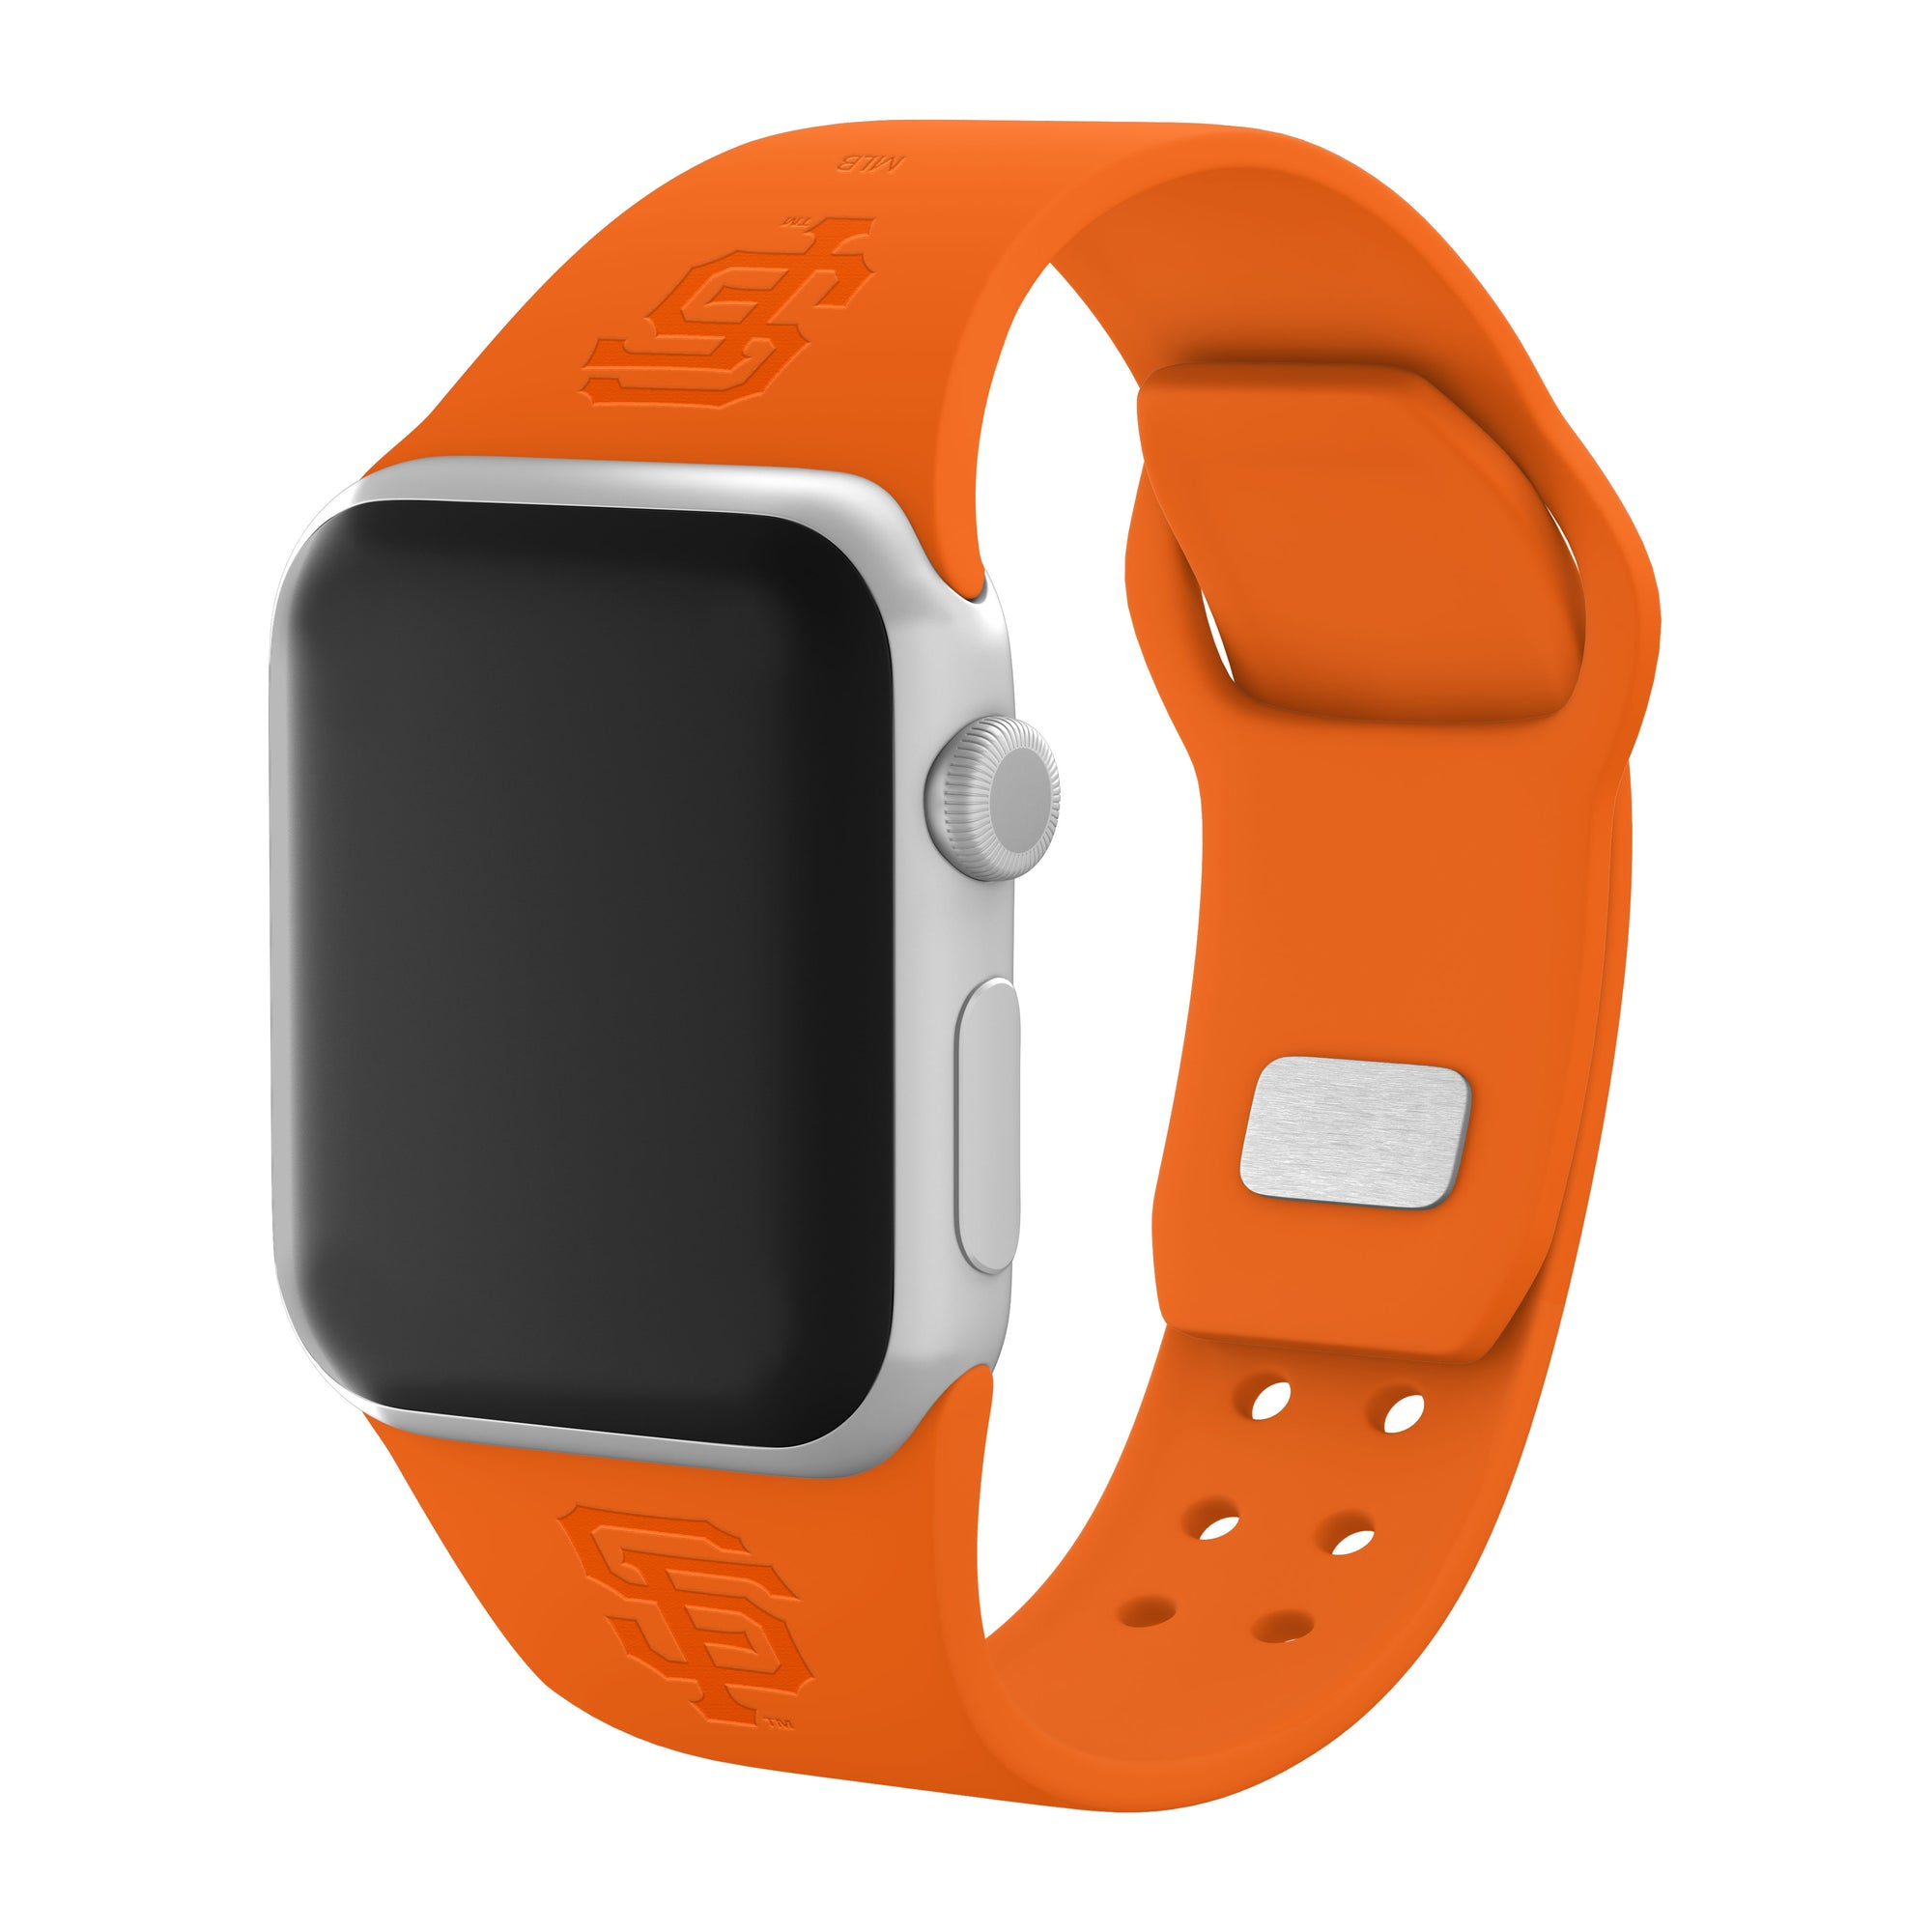 San Francisco Giants Debossed Silicone Apple Watch Band - Affinity Bands